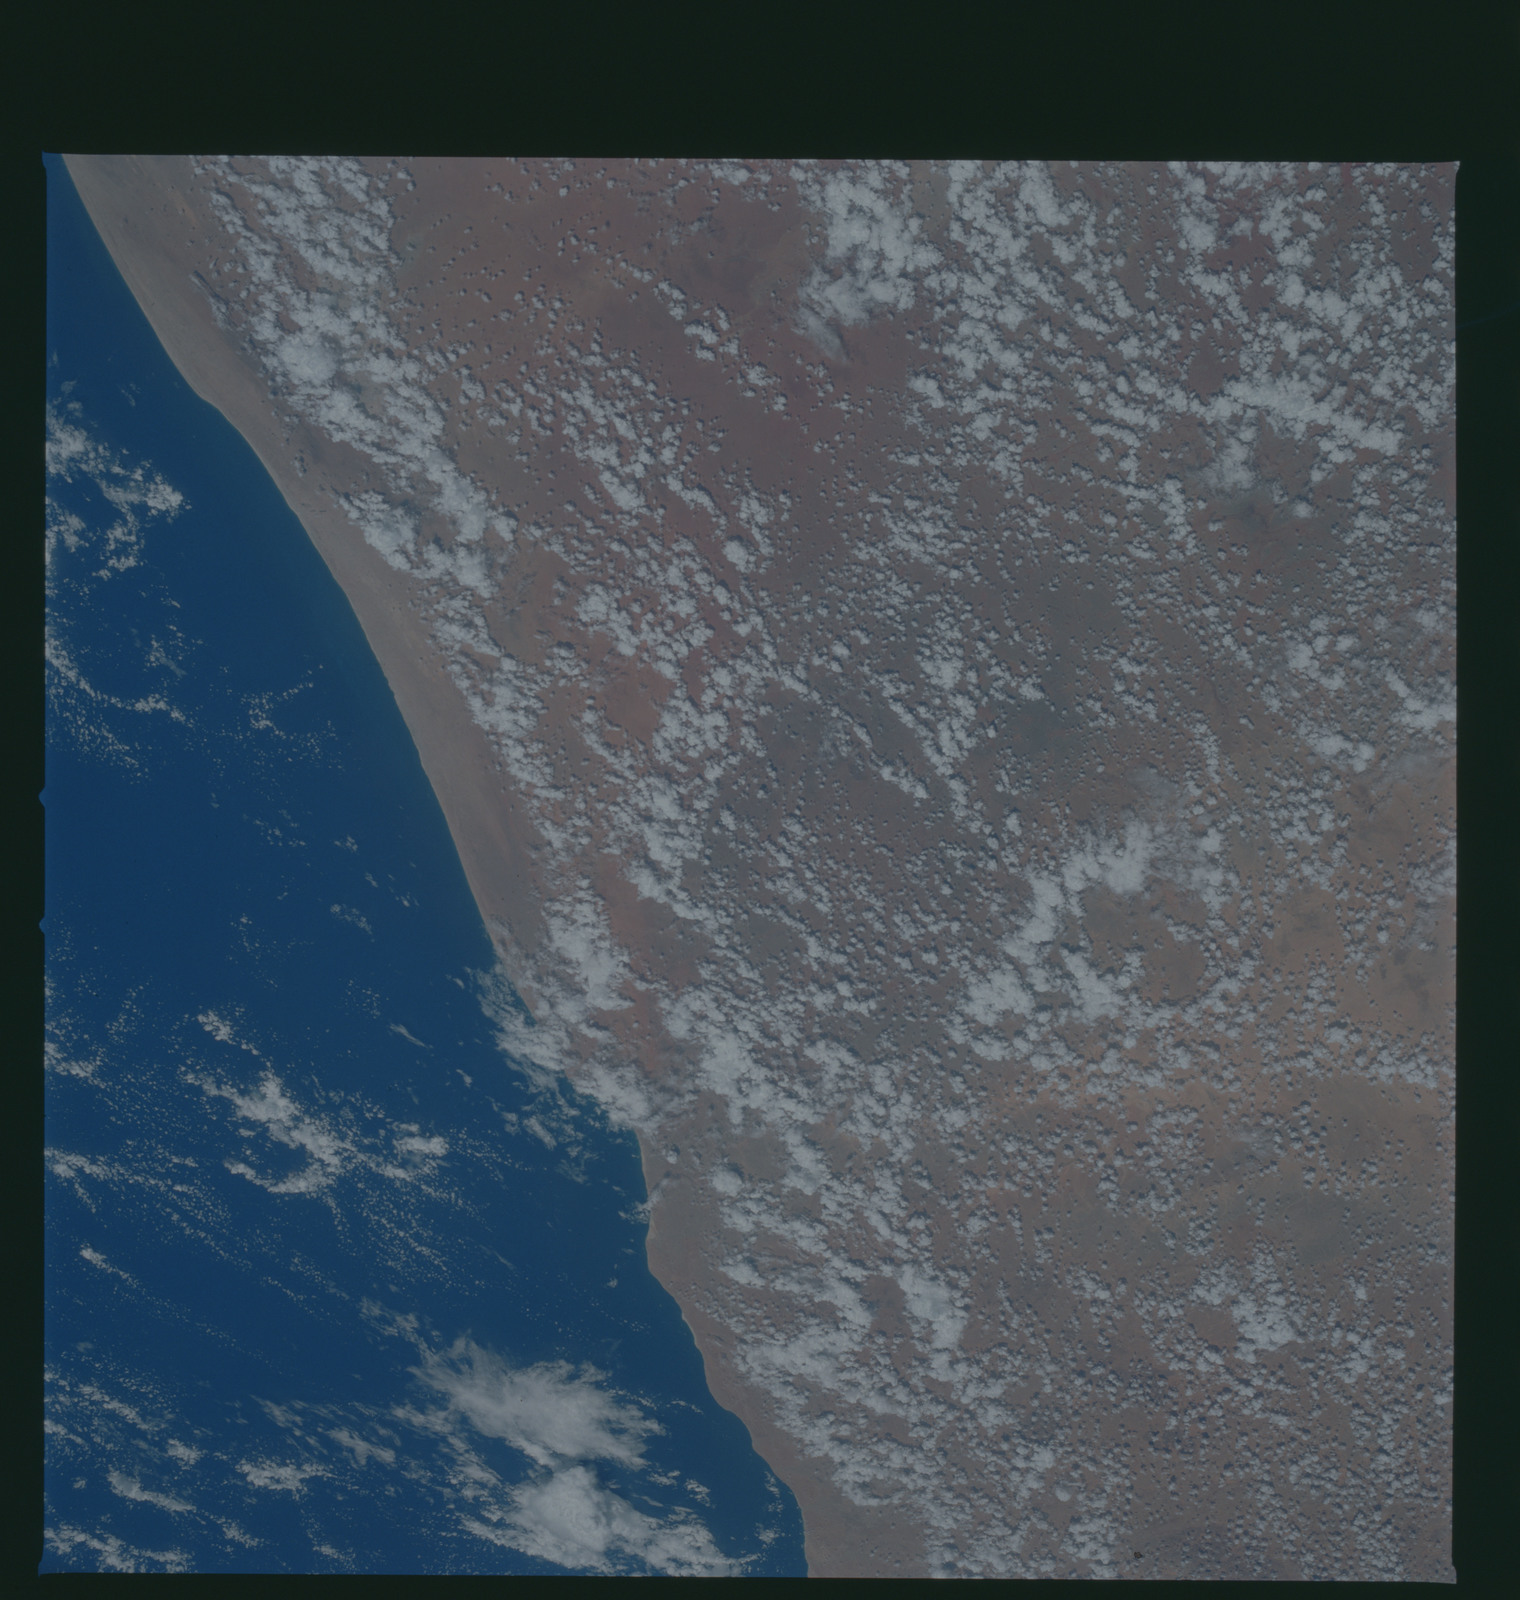 S37-96-103 - STS-037 - Earth observations taken from OV-104 during STS-37 mission